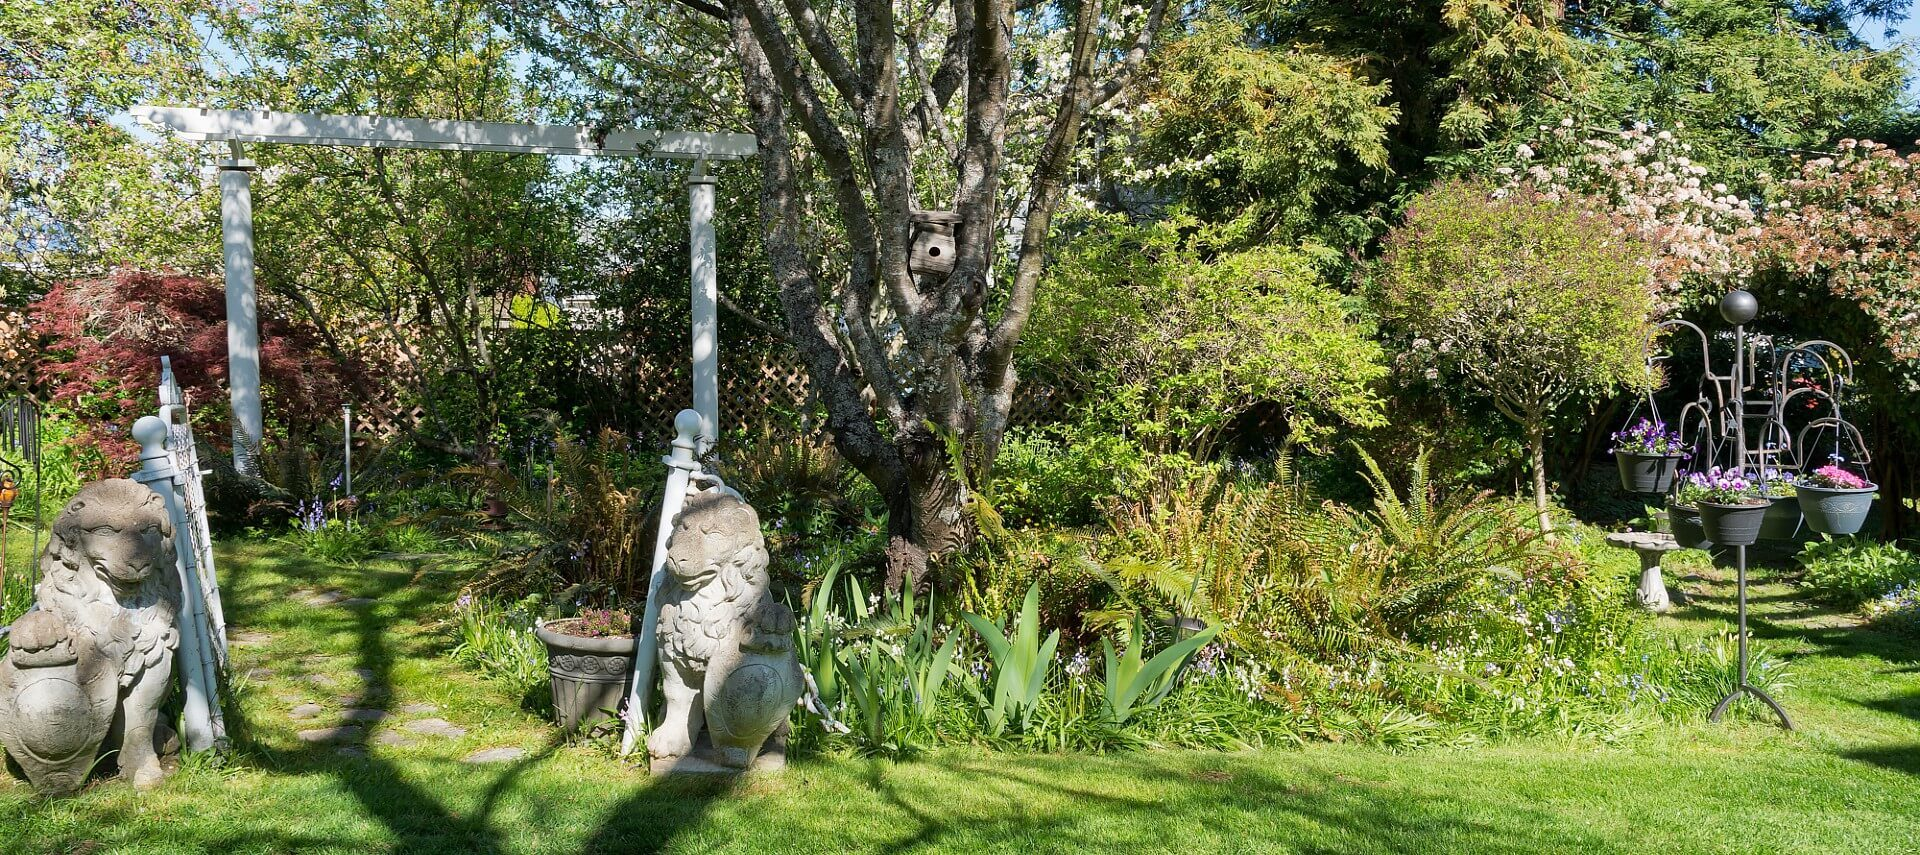 Large garden area with tall white gate by lion statues and stand with hanging baskets